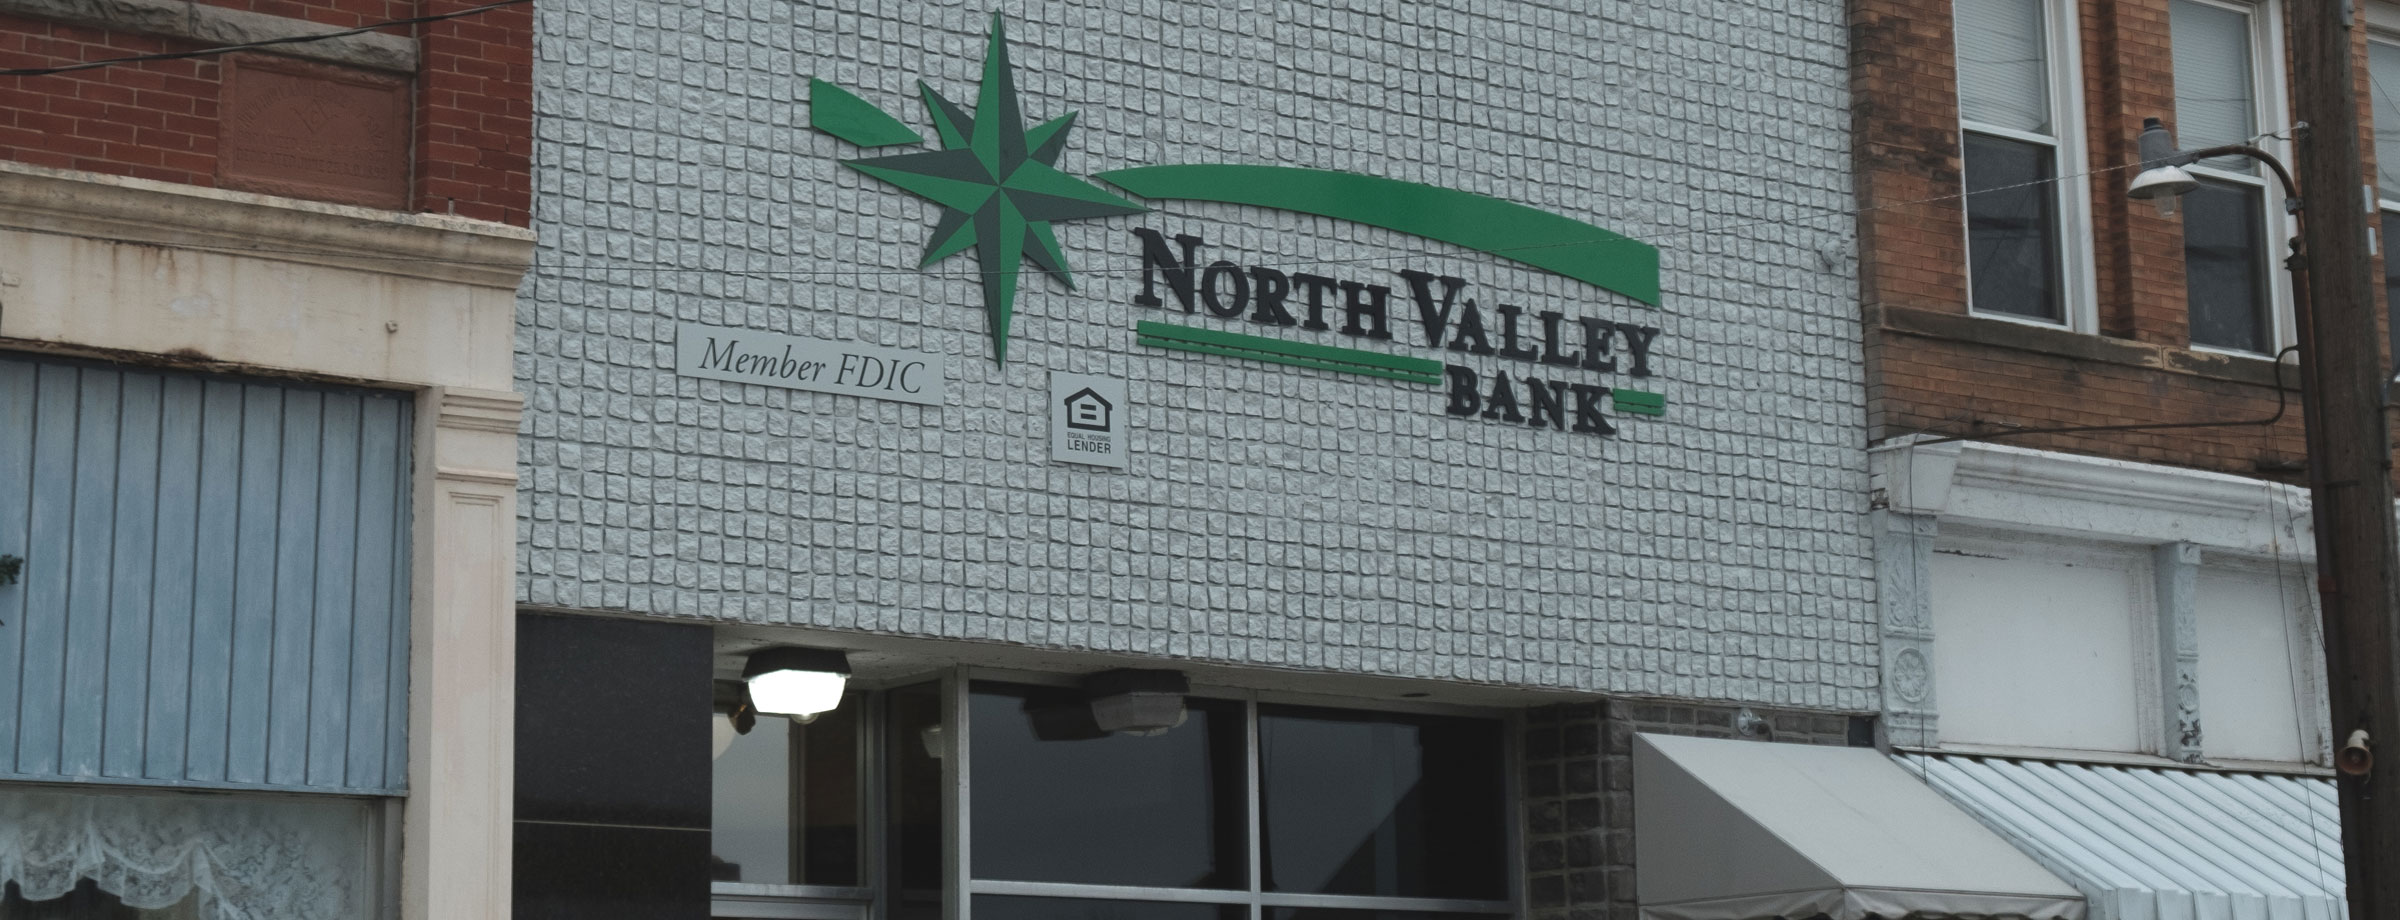 North-Valley-Bank-New-Holland-Office